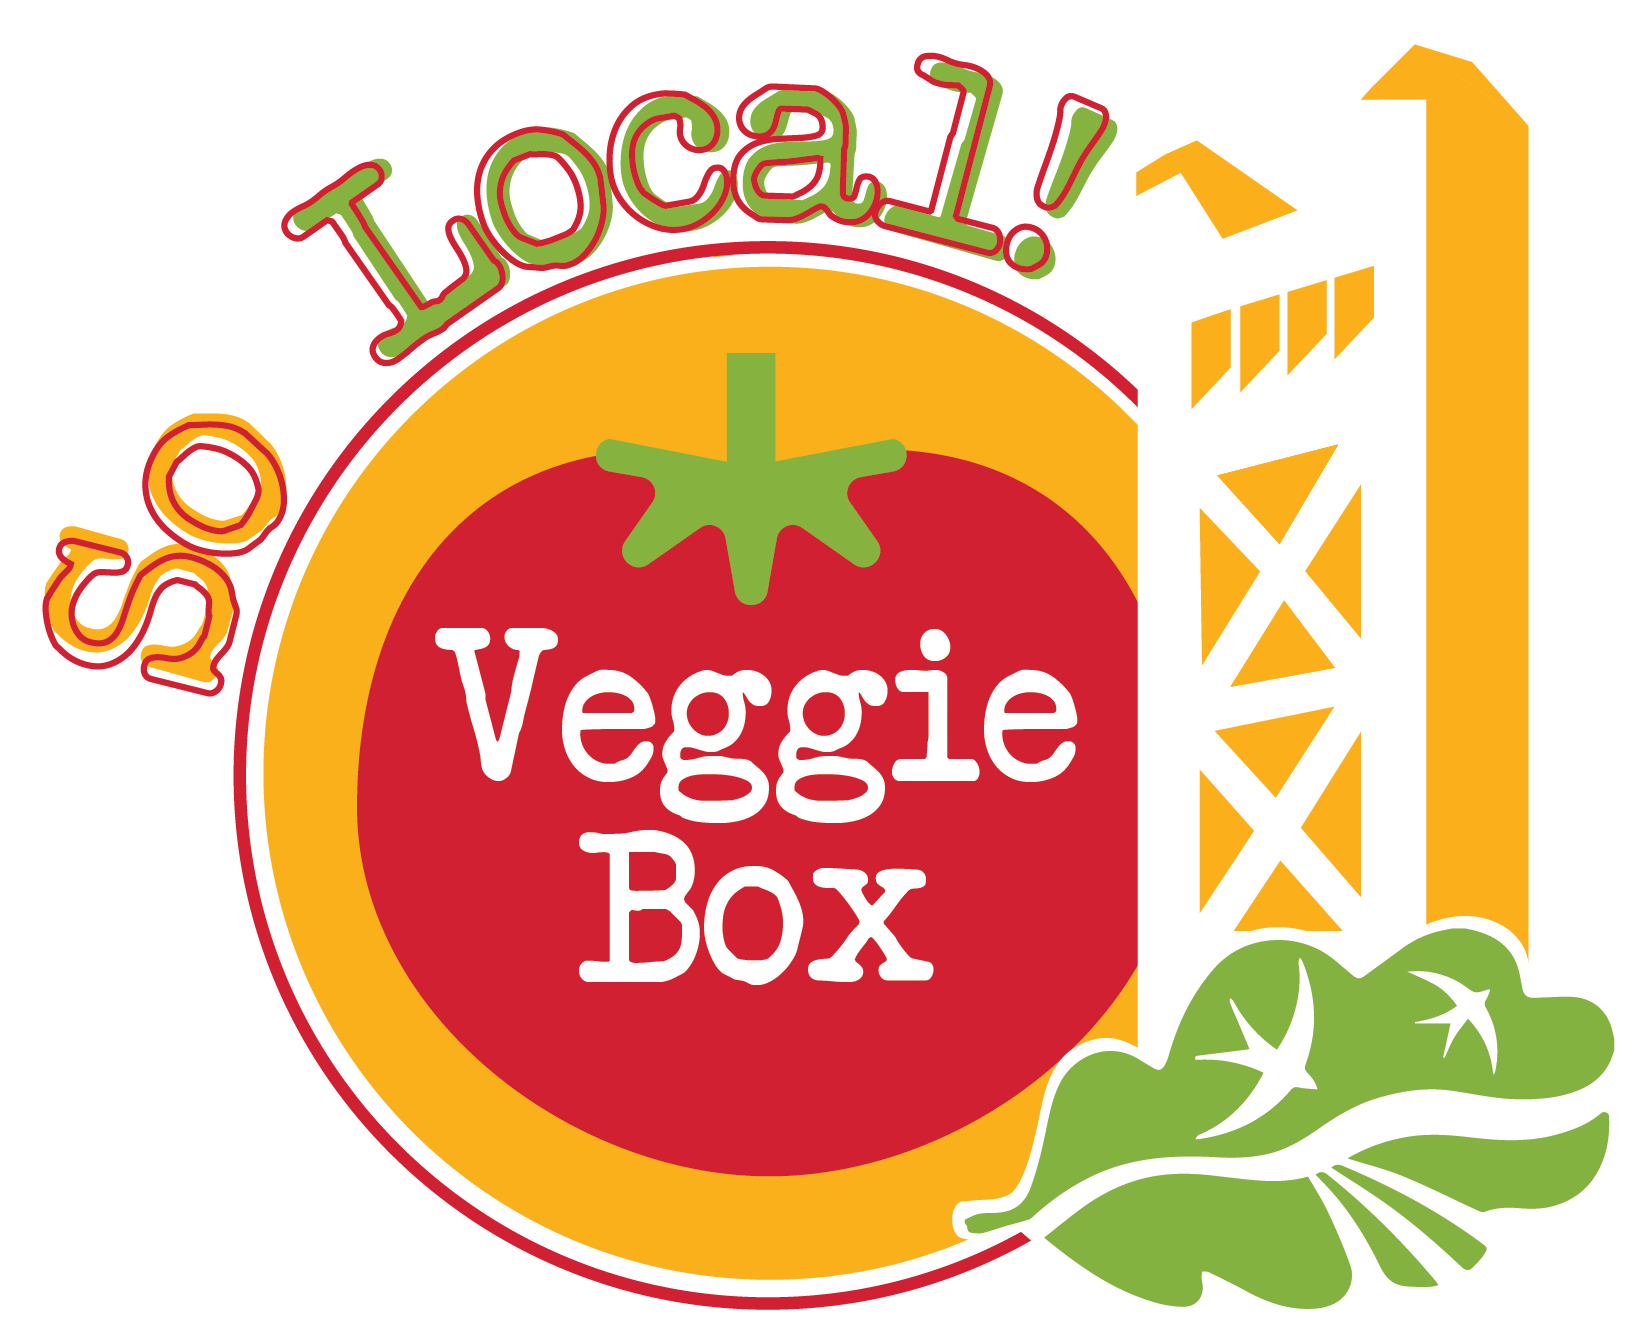 Join the So Local! Veggie Box CSA